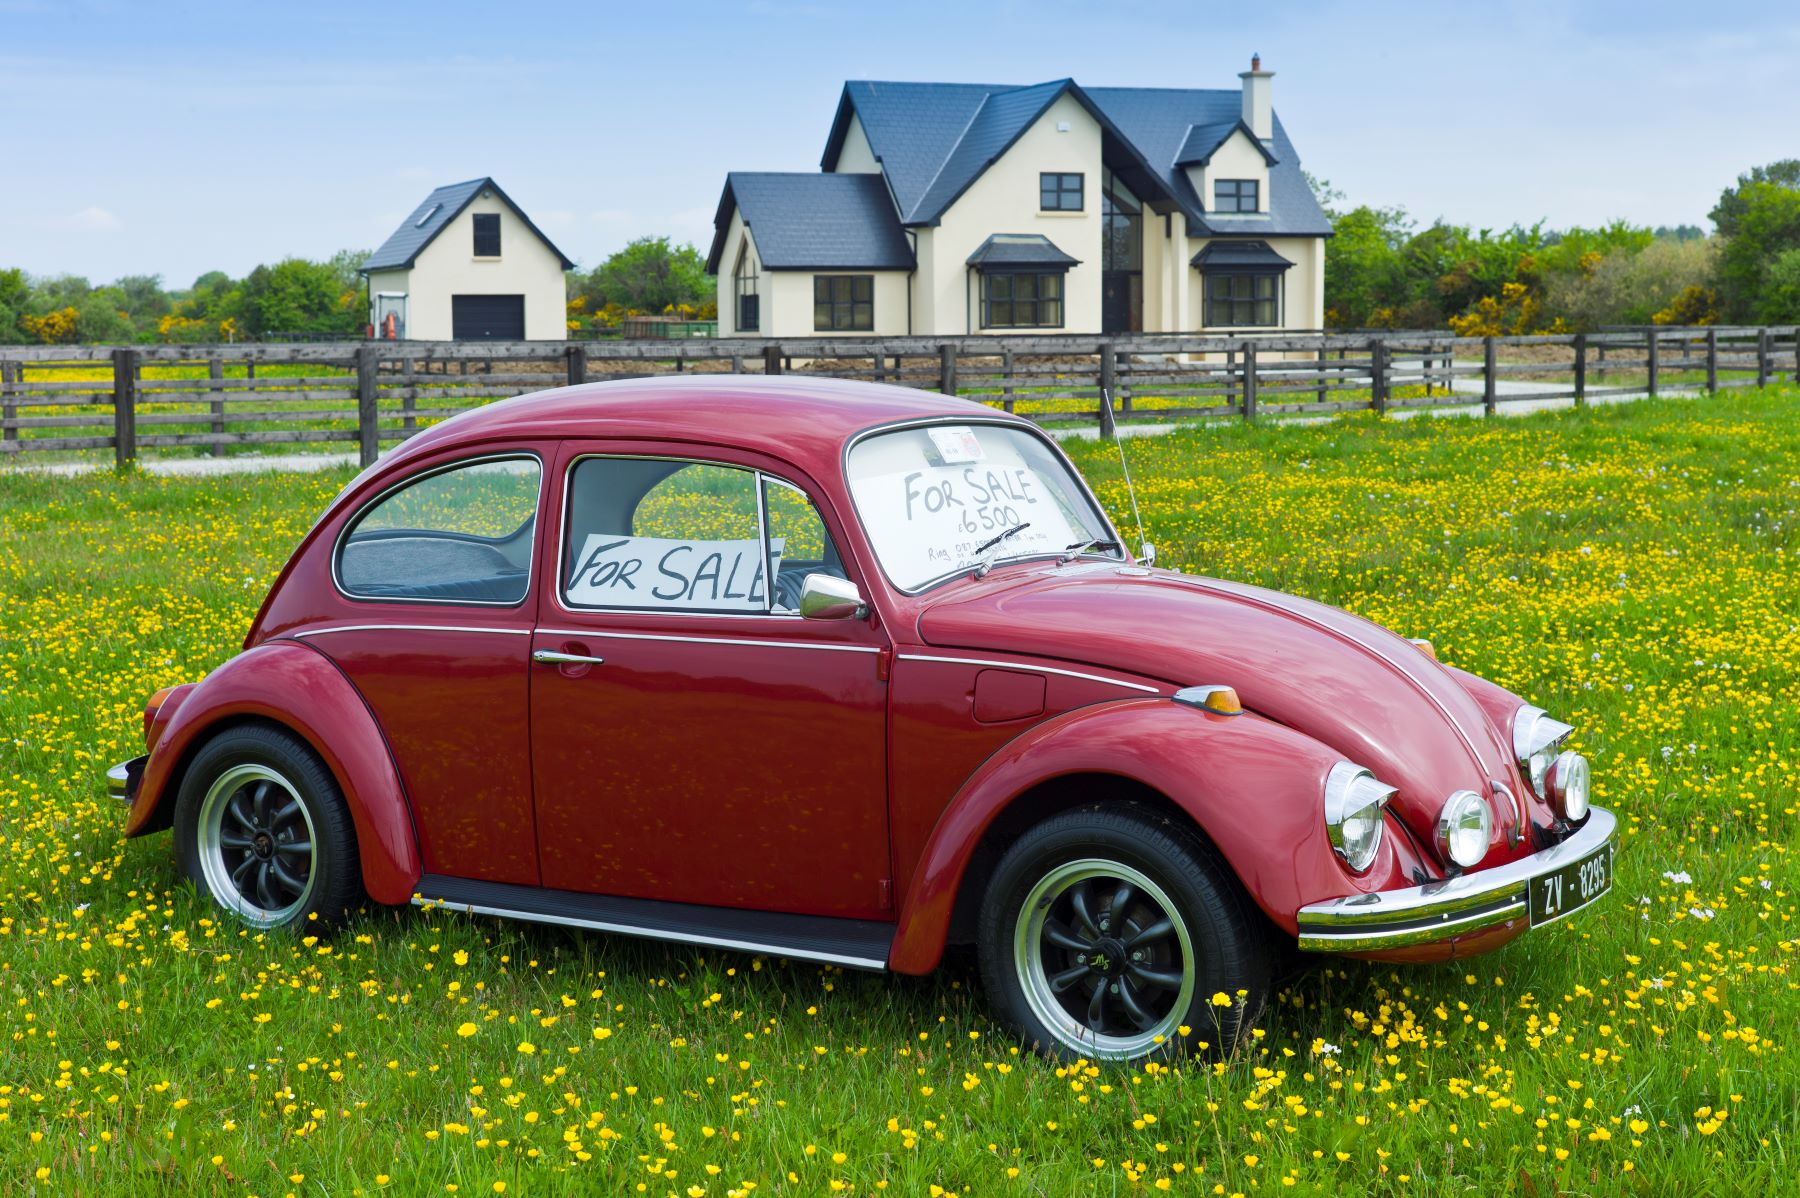 A red Volkswagen Beetle with a 'For Sale' sign for under $7,000 on its windshield parked in a field of flowers in Taghmon, Ireland